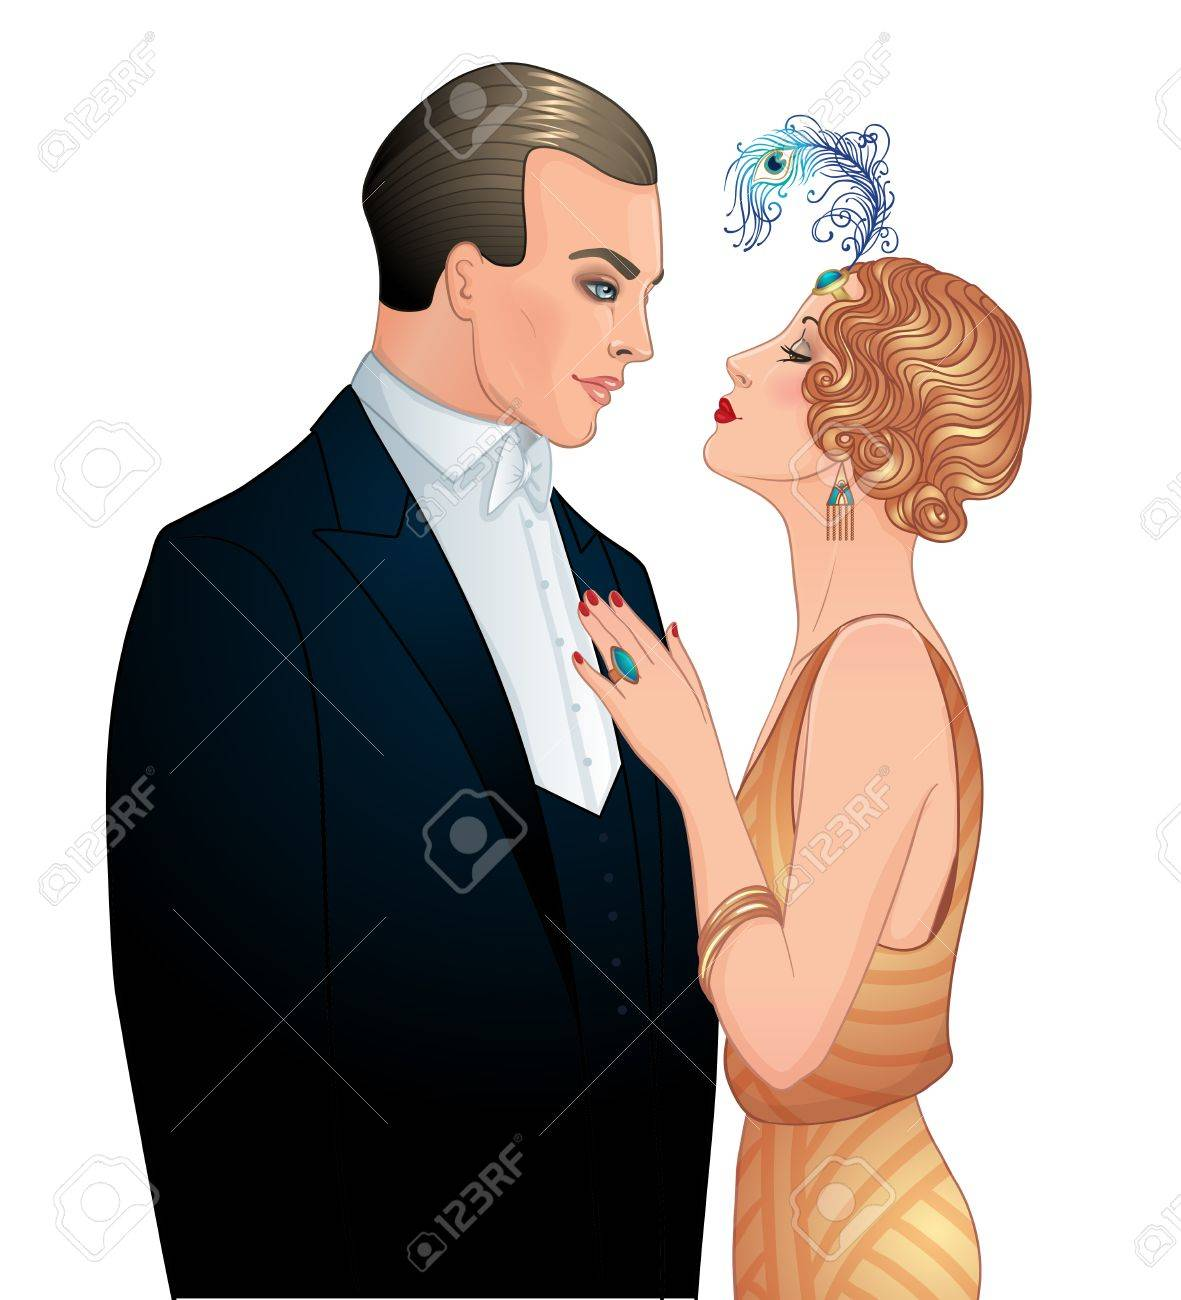 Beautiful couple in art deco style. Retro fashion: glamour man and woman of twenties. Vector illustration. Flapper 20's style. Vintage party or thematic wedding invitation design template. - 87434802